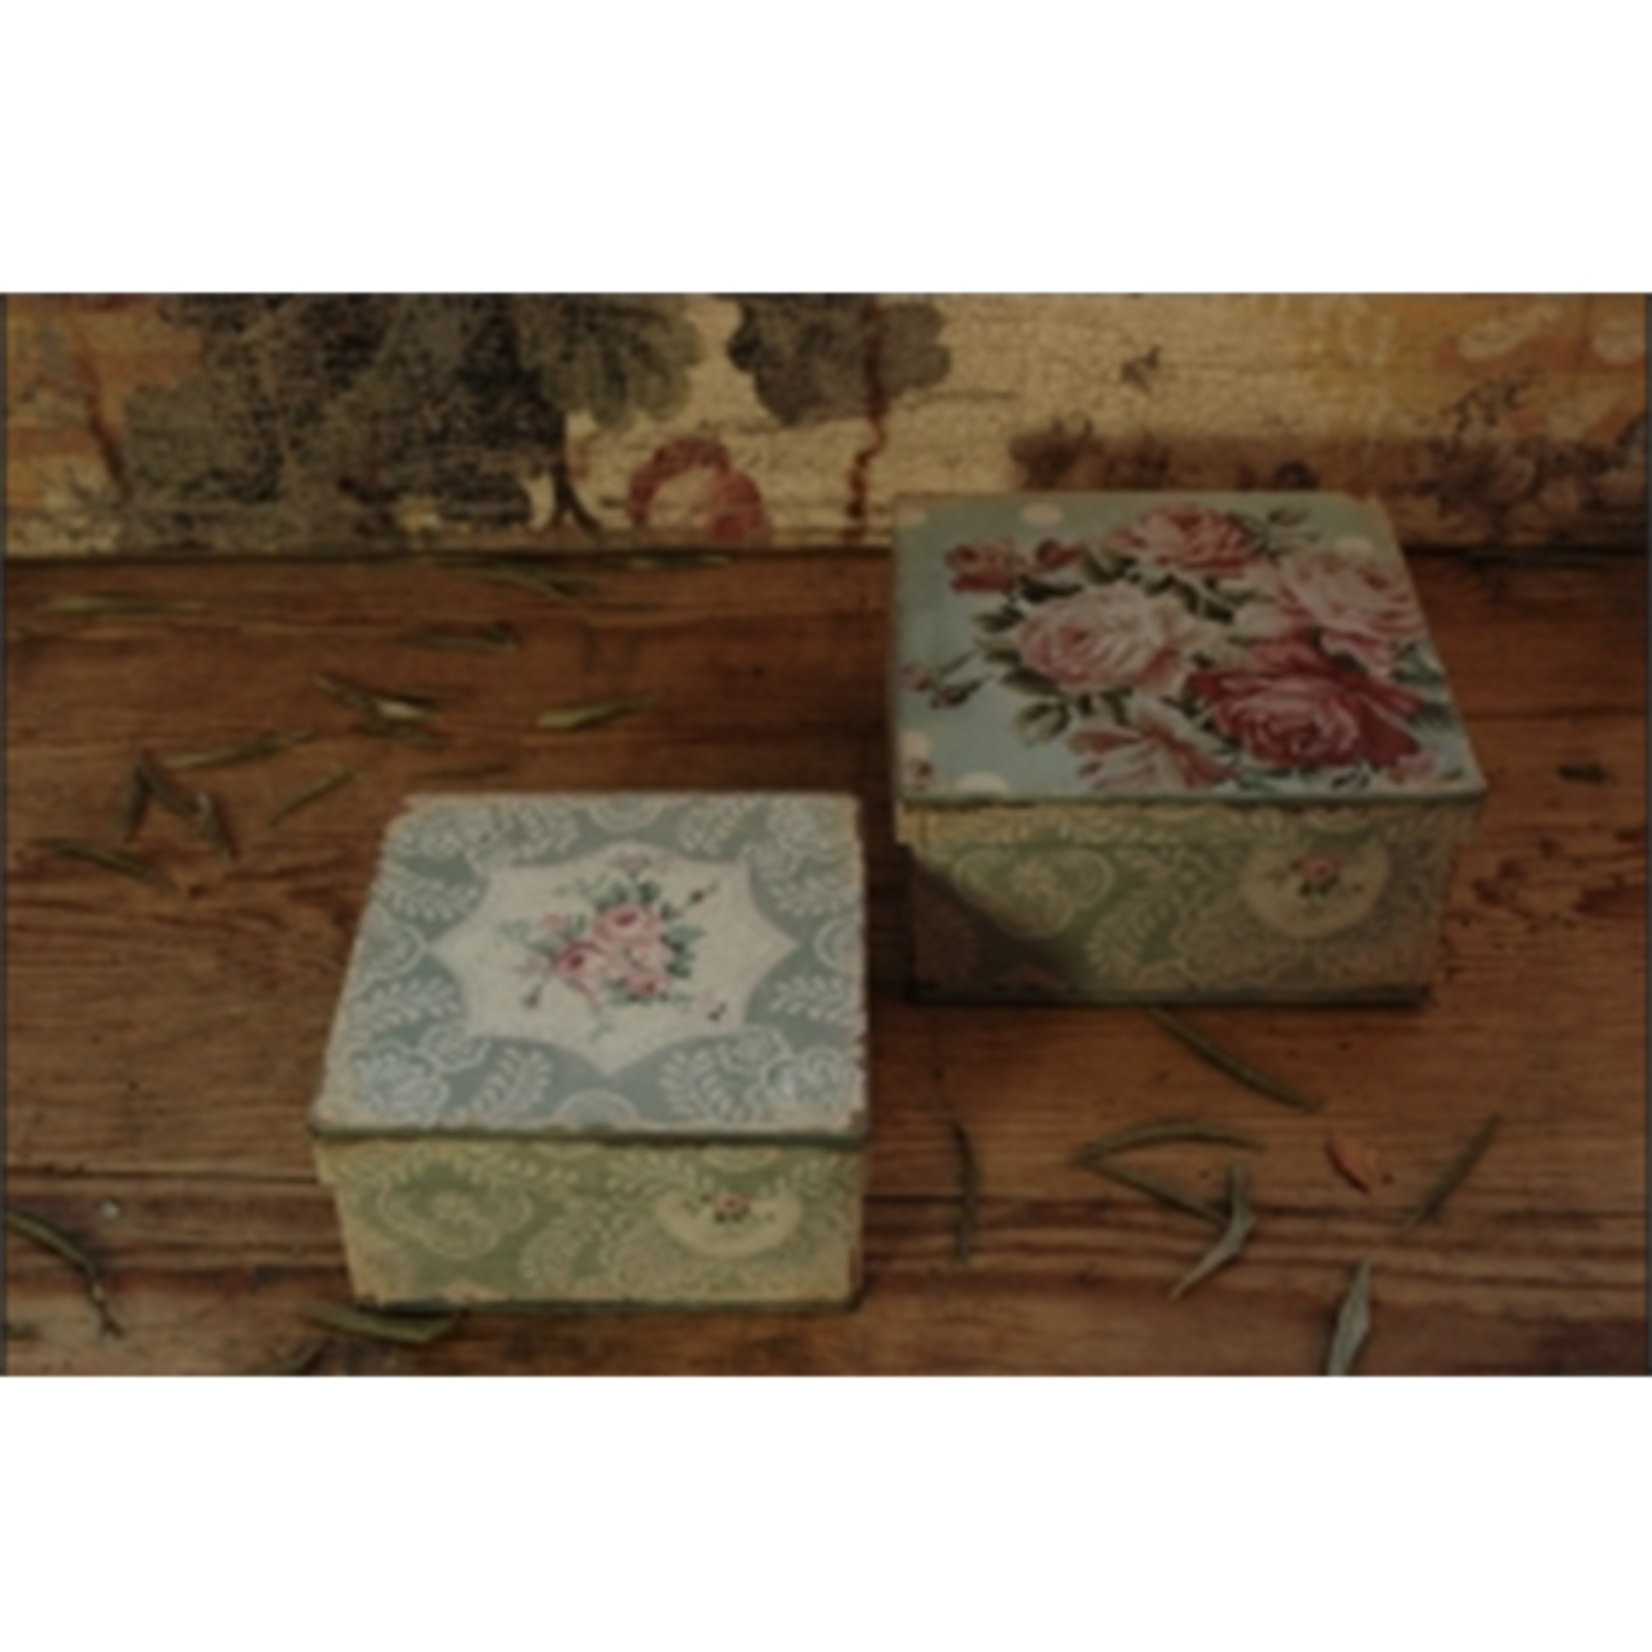 CHEHOMA S/2 Square Boxes flower design